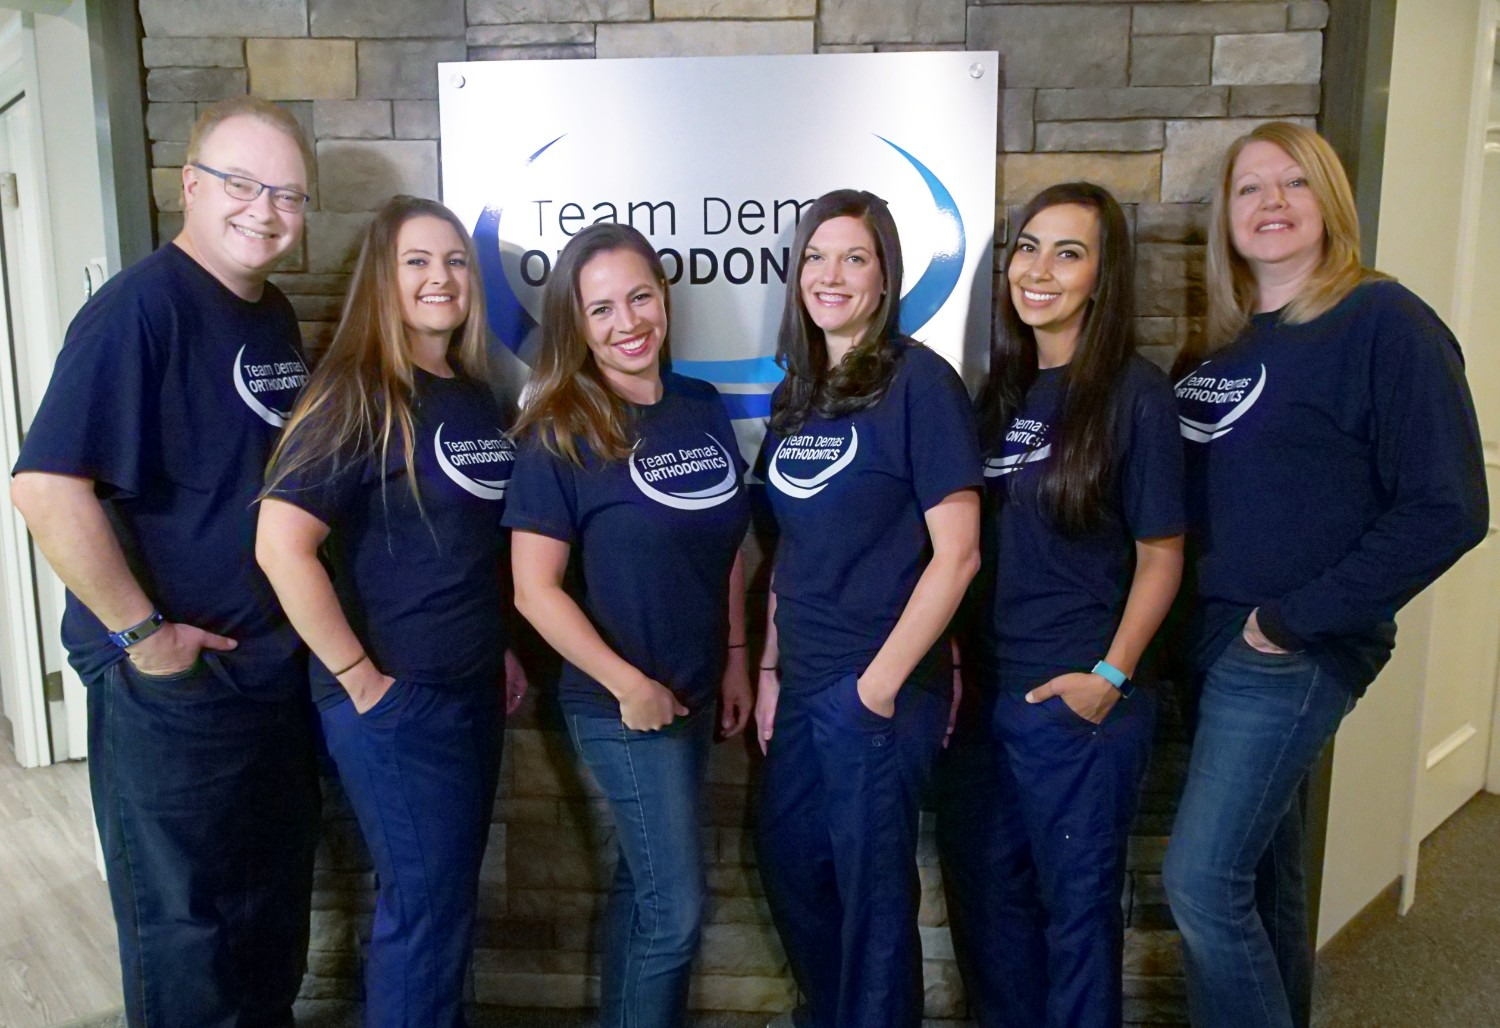 Team Demas Orthodontics – Newsletter May 2018